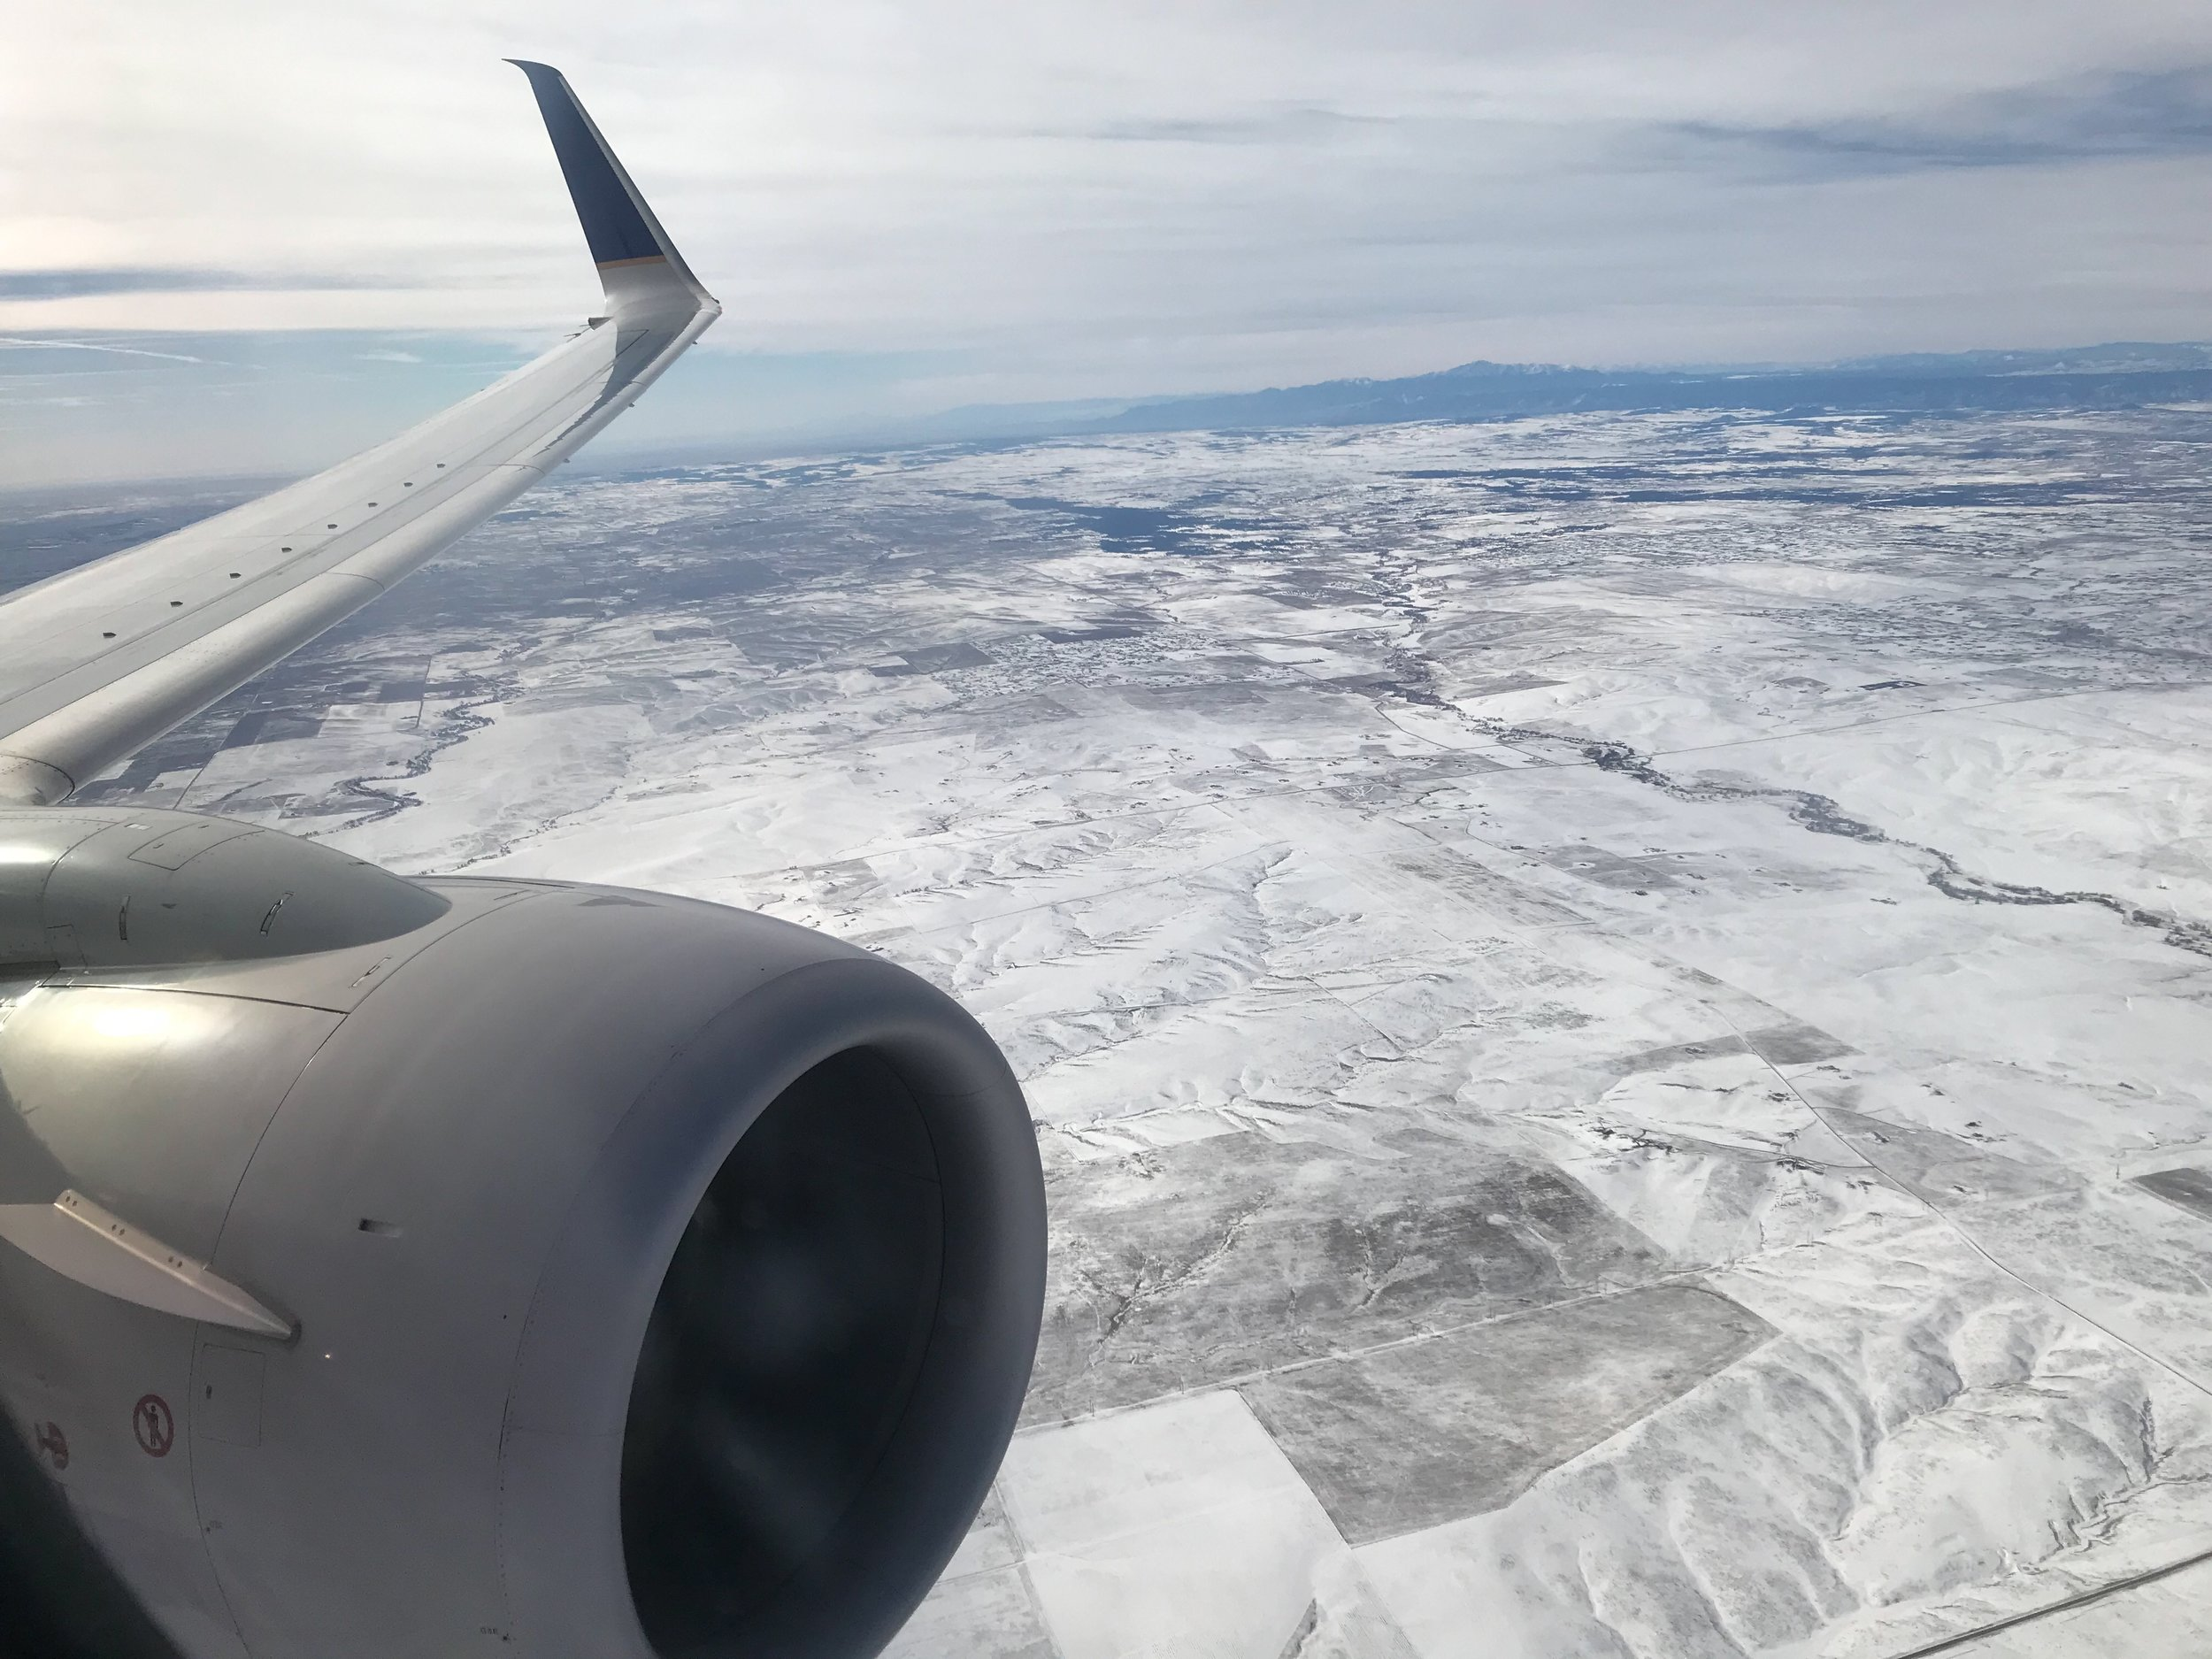 Arriving in a snowy Denver.